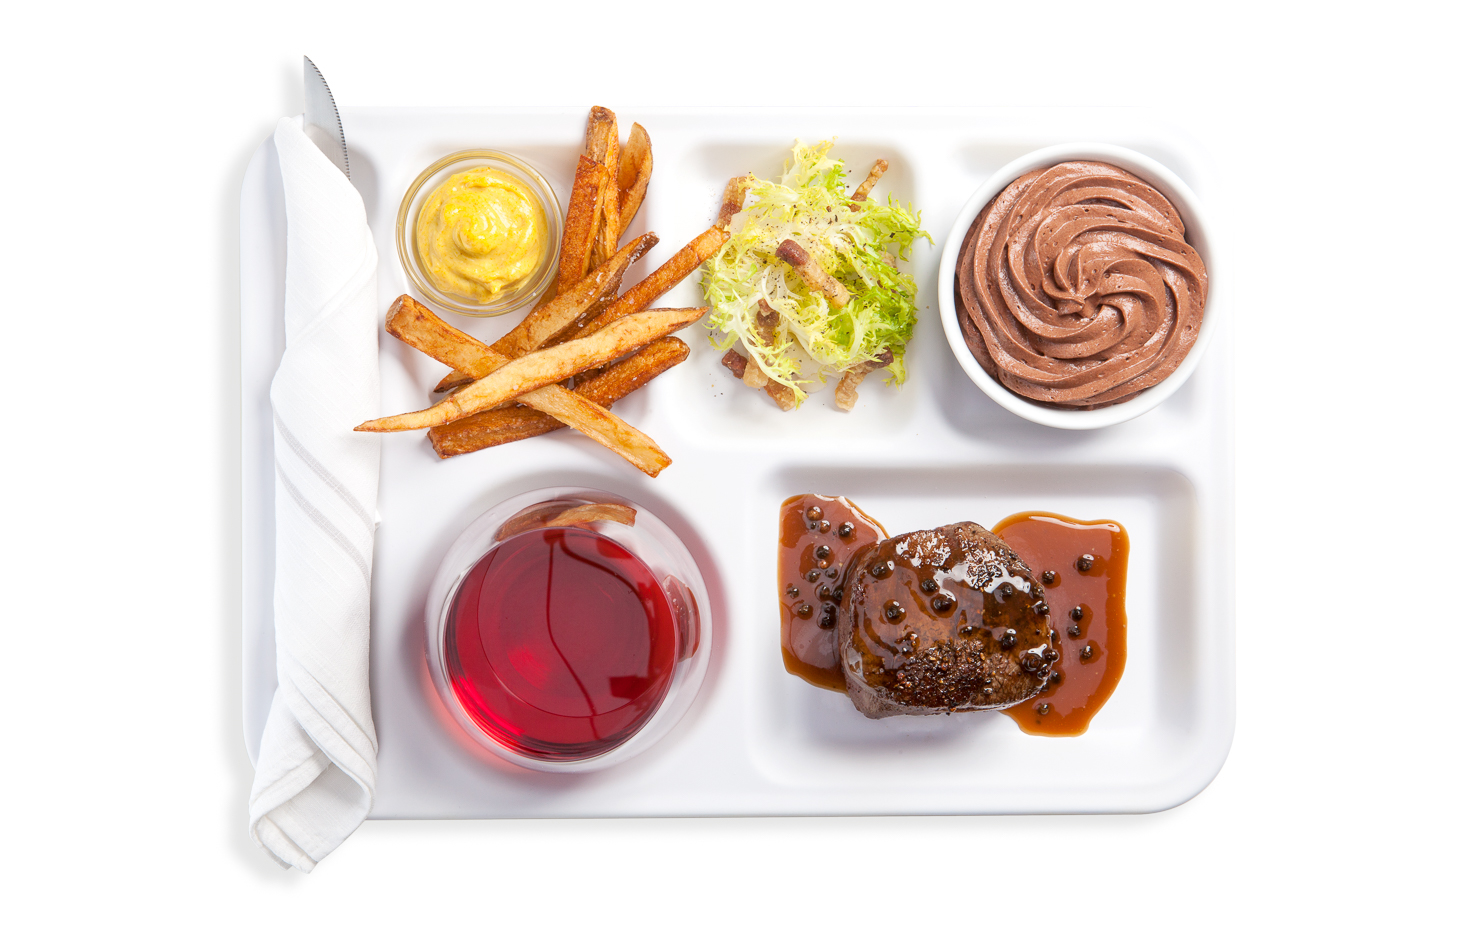 The Brasserie Lunch Tray